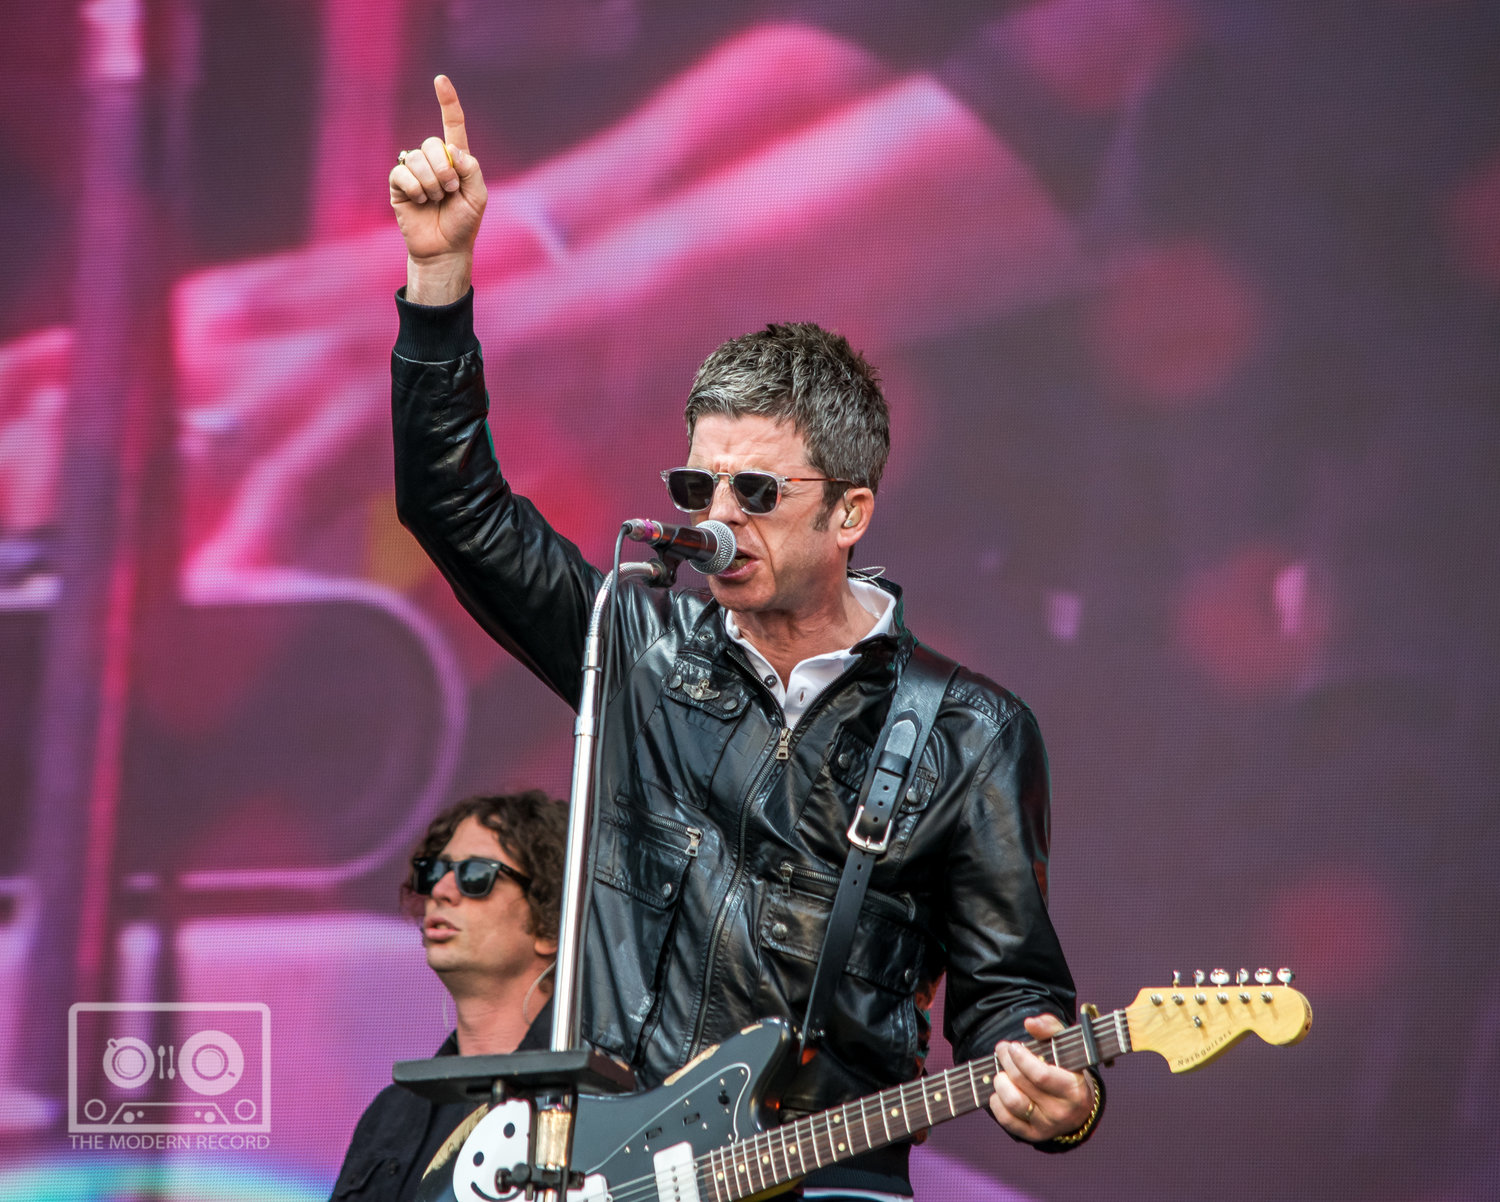 NOEL GALLAGHER CLOSING LAST DAY AT BBC BIGGEST WEEKEND IN PERTH - 26.05.2018  PICTURE BY: STEPHEN WILSON PHOTOGRAPHY